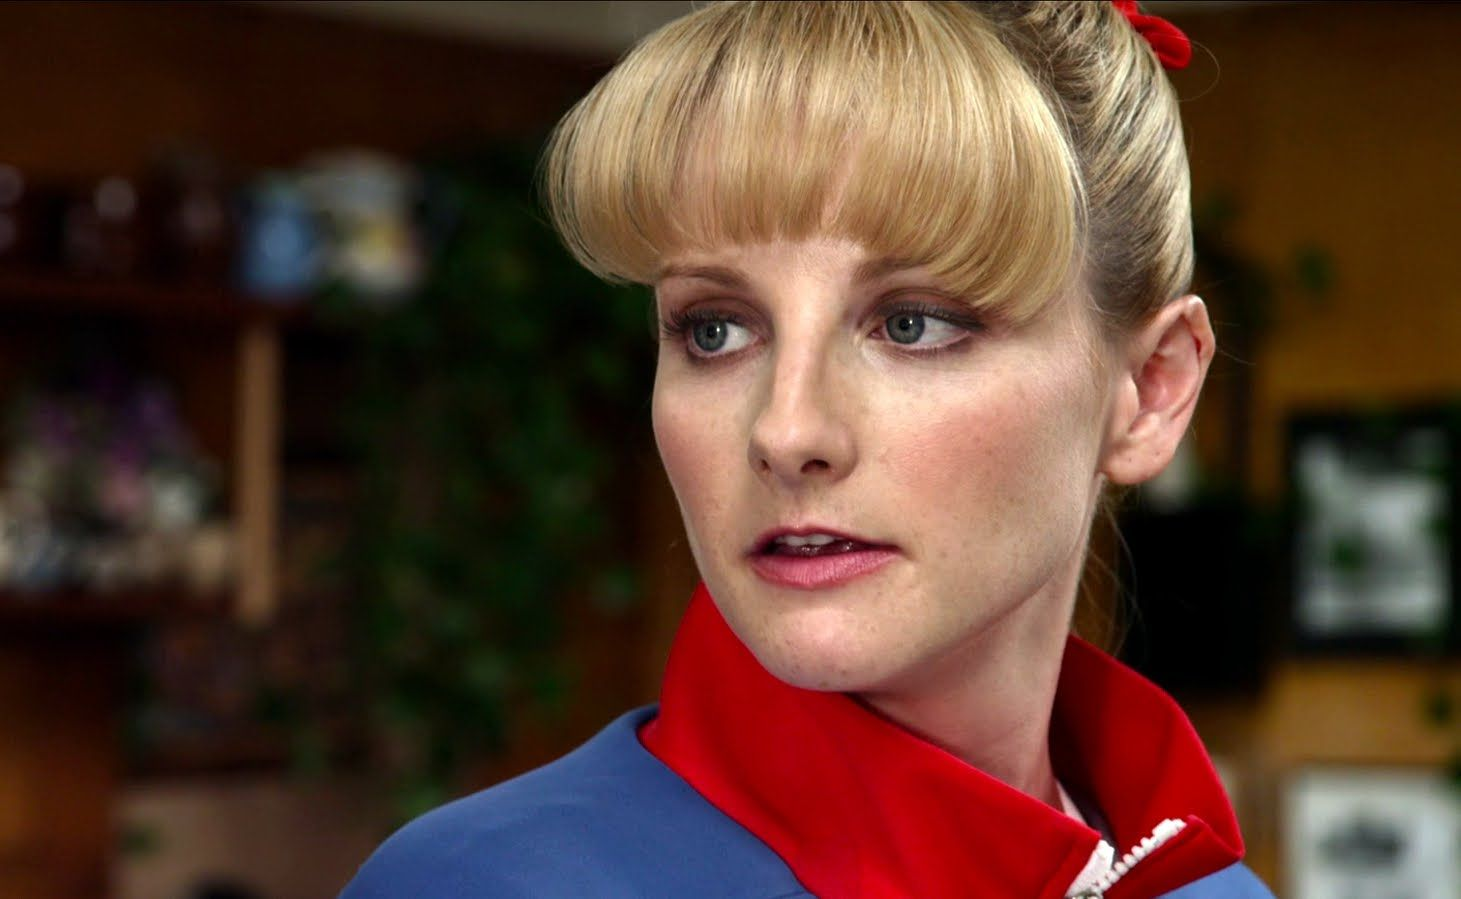 The Bronze Review: Melissa Raunch Leads R-Rated Comedy